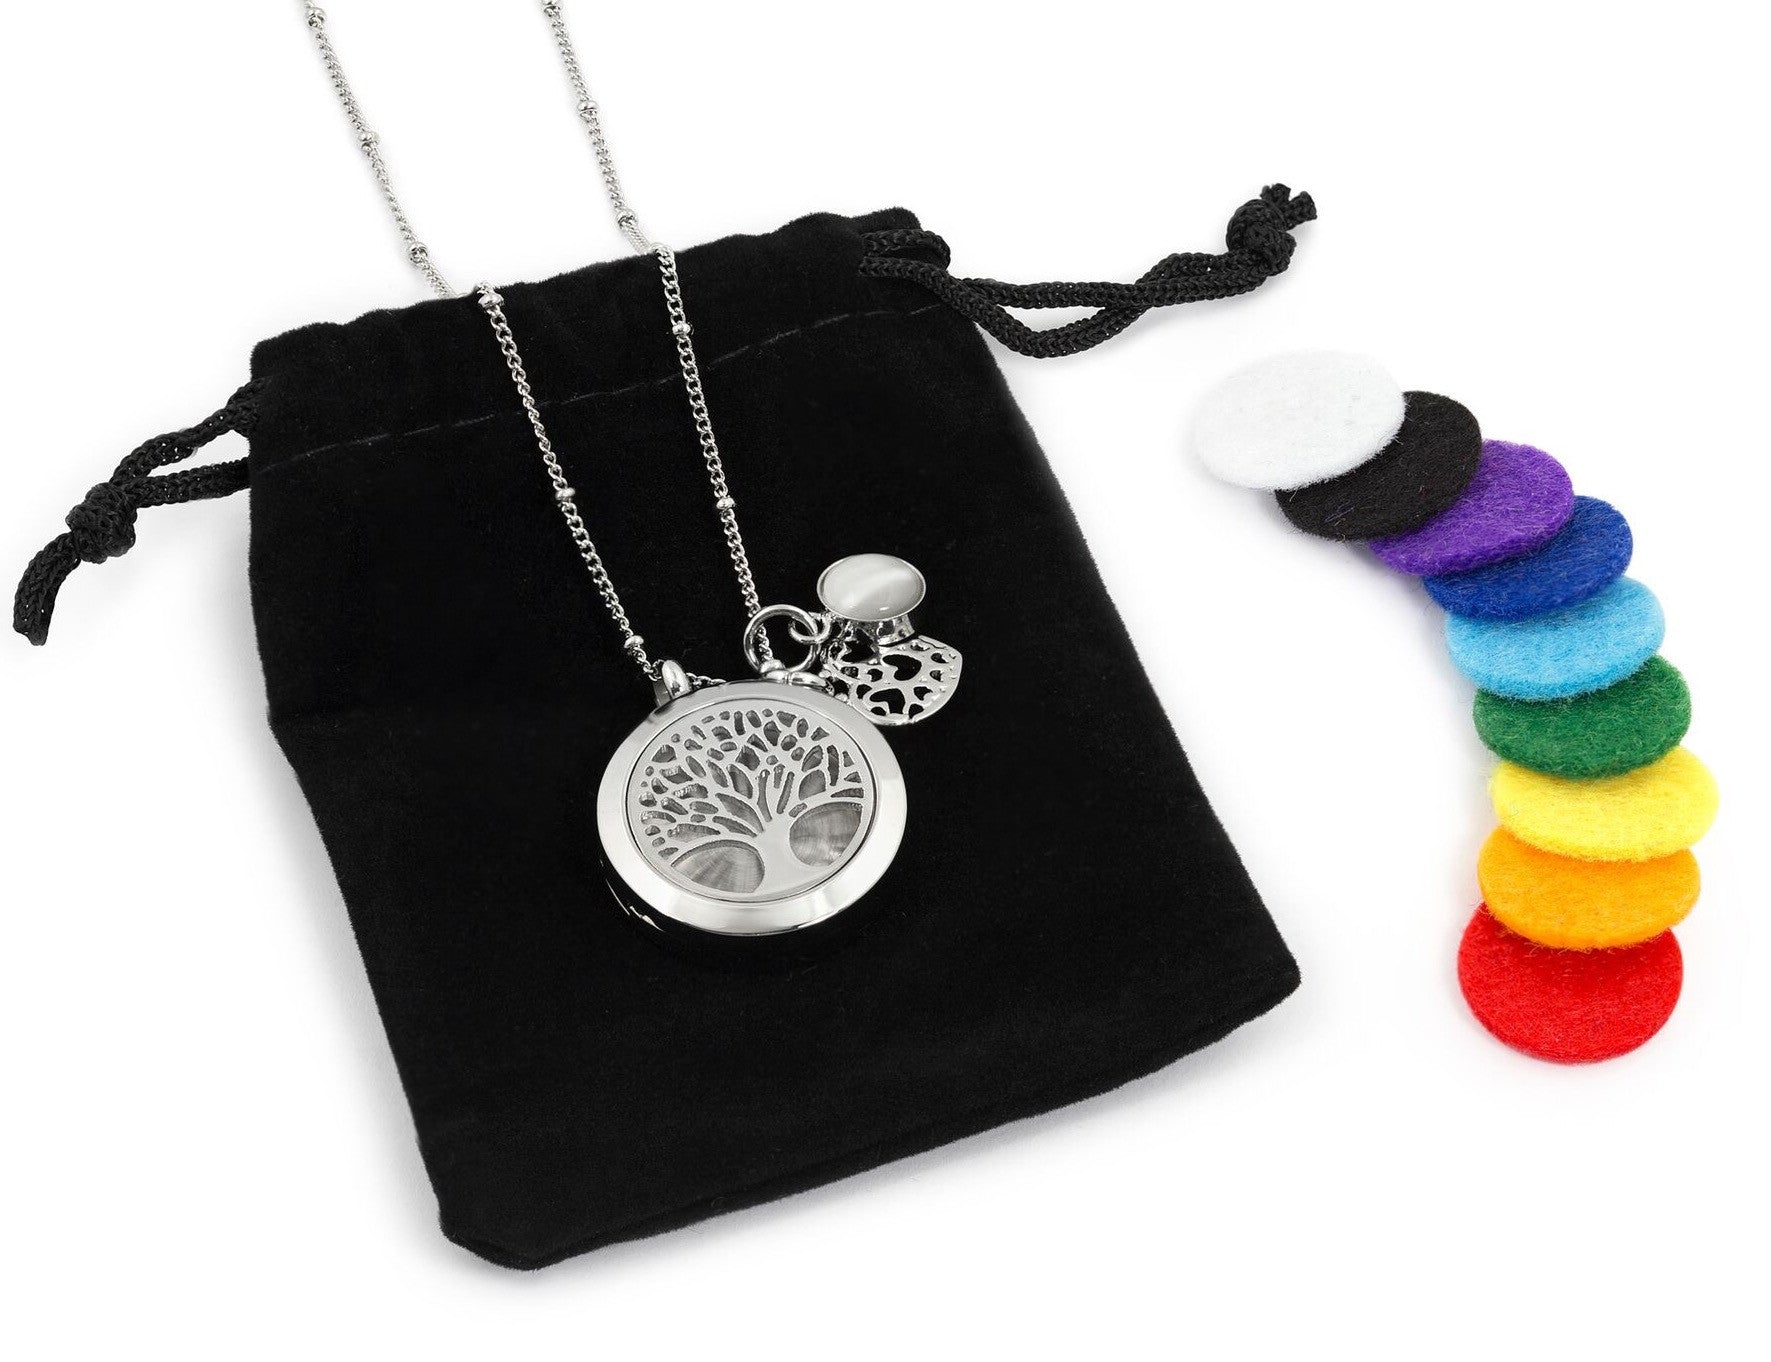 Diffuser silver necklace with tree of life and namaste charm